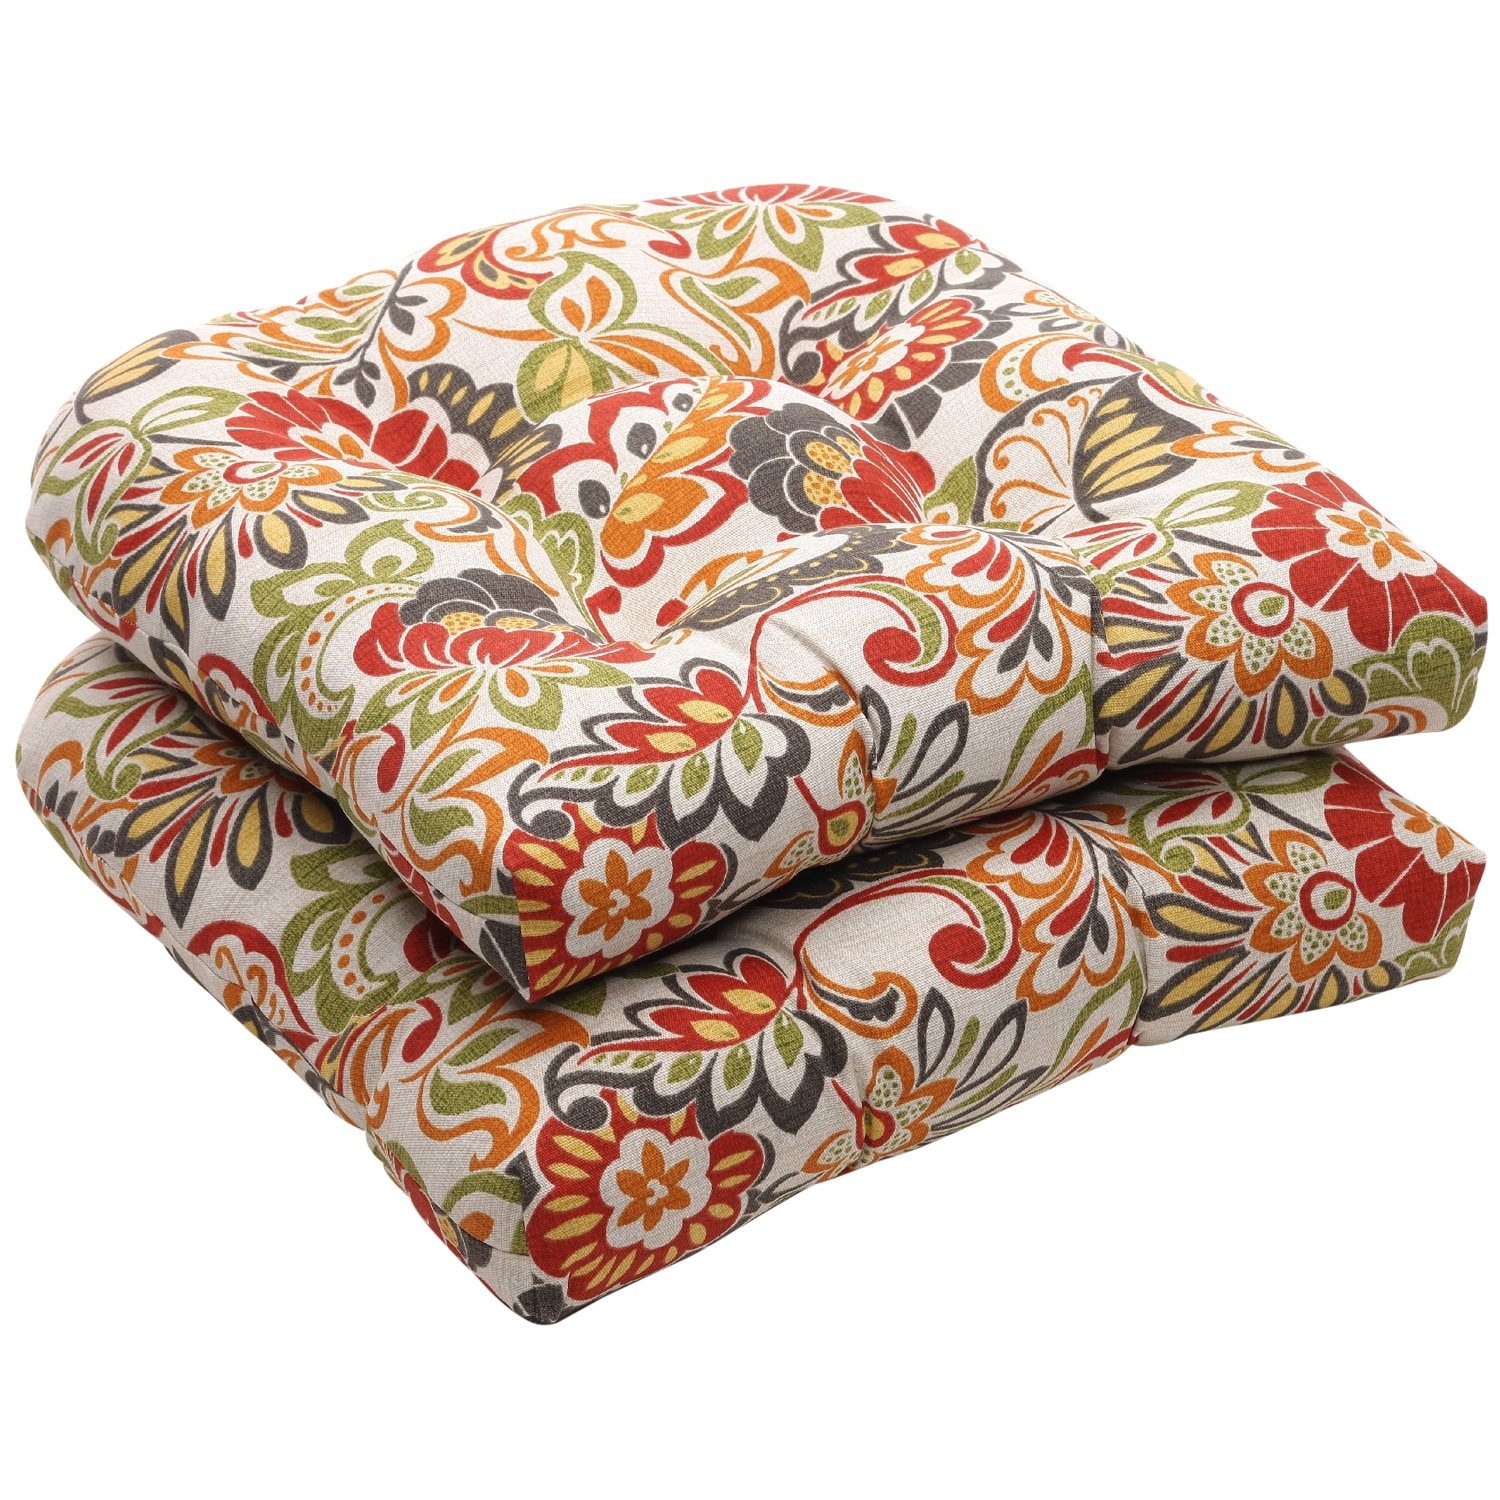 Pillows For Chairs Outdoor Multicolored Floral Wicker Seat Cushions Set Of 2